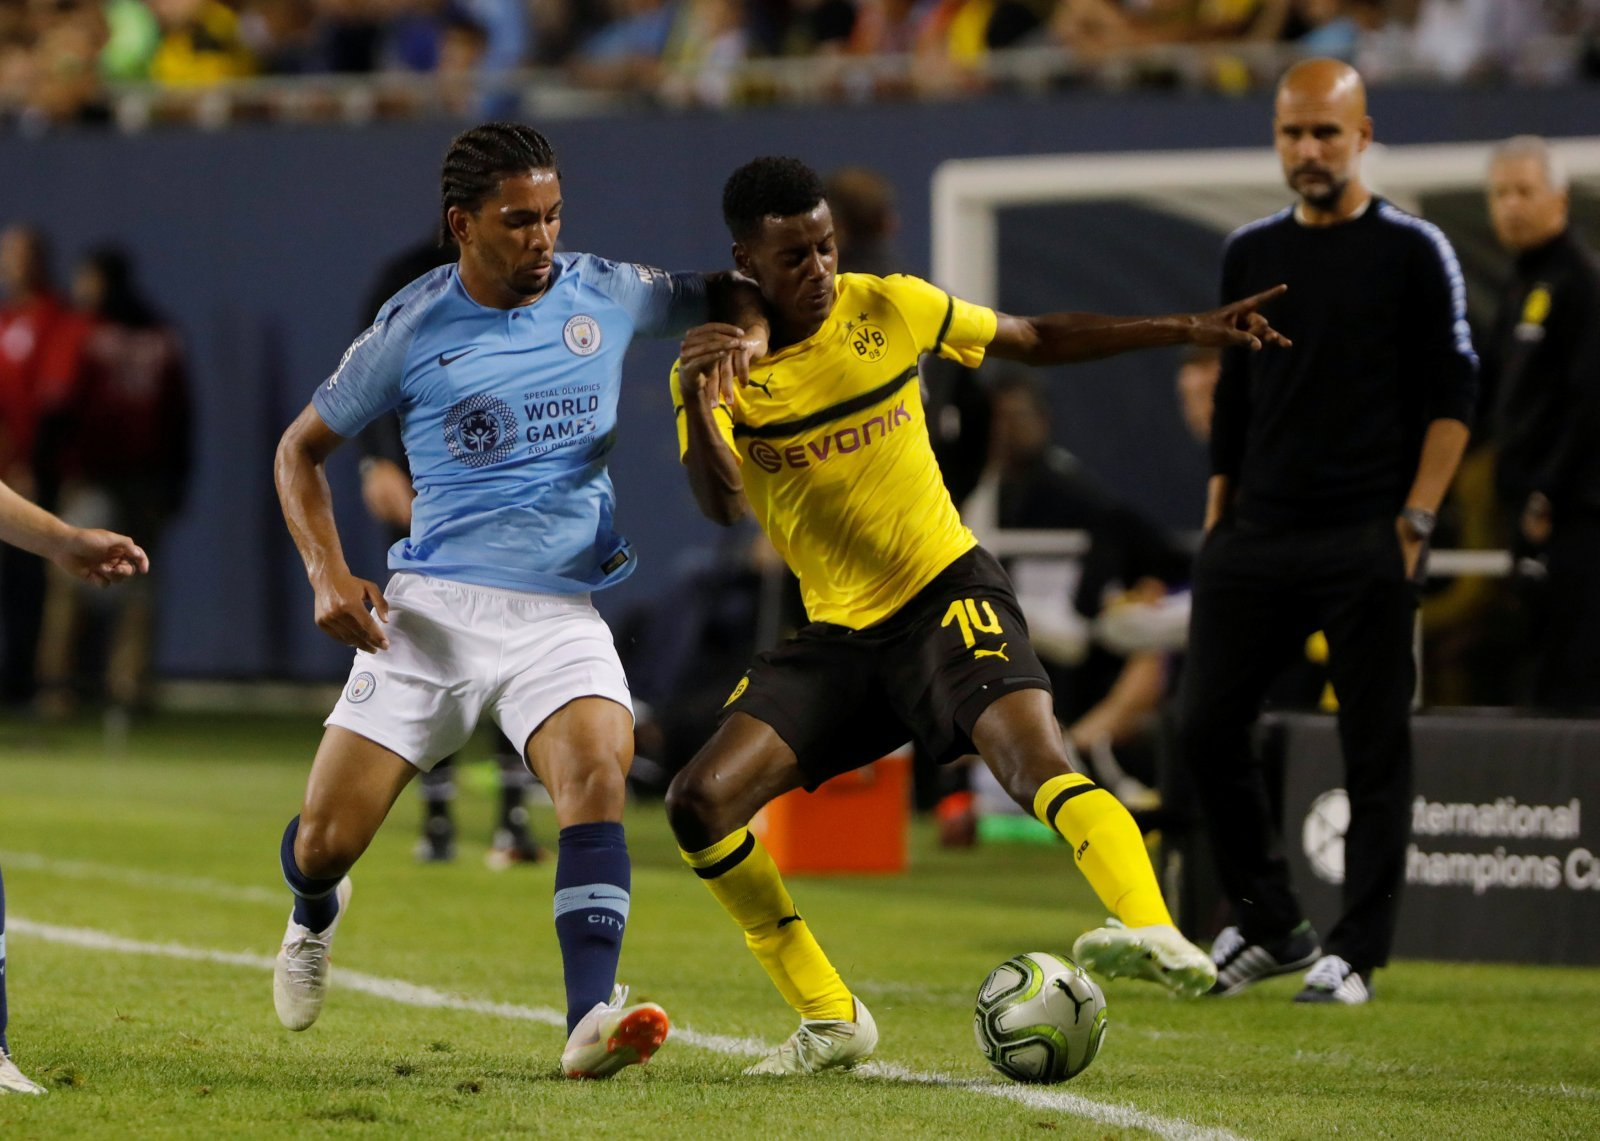 Rangers should look to Dortmund's Isak as another forward option